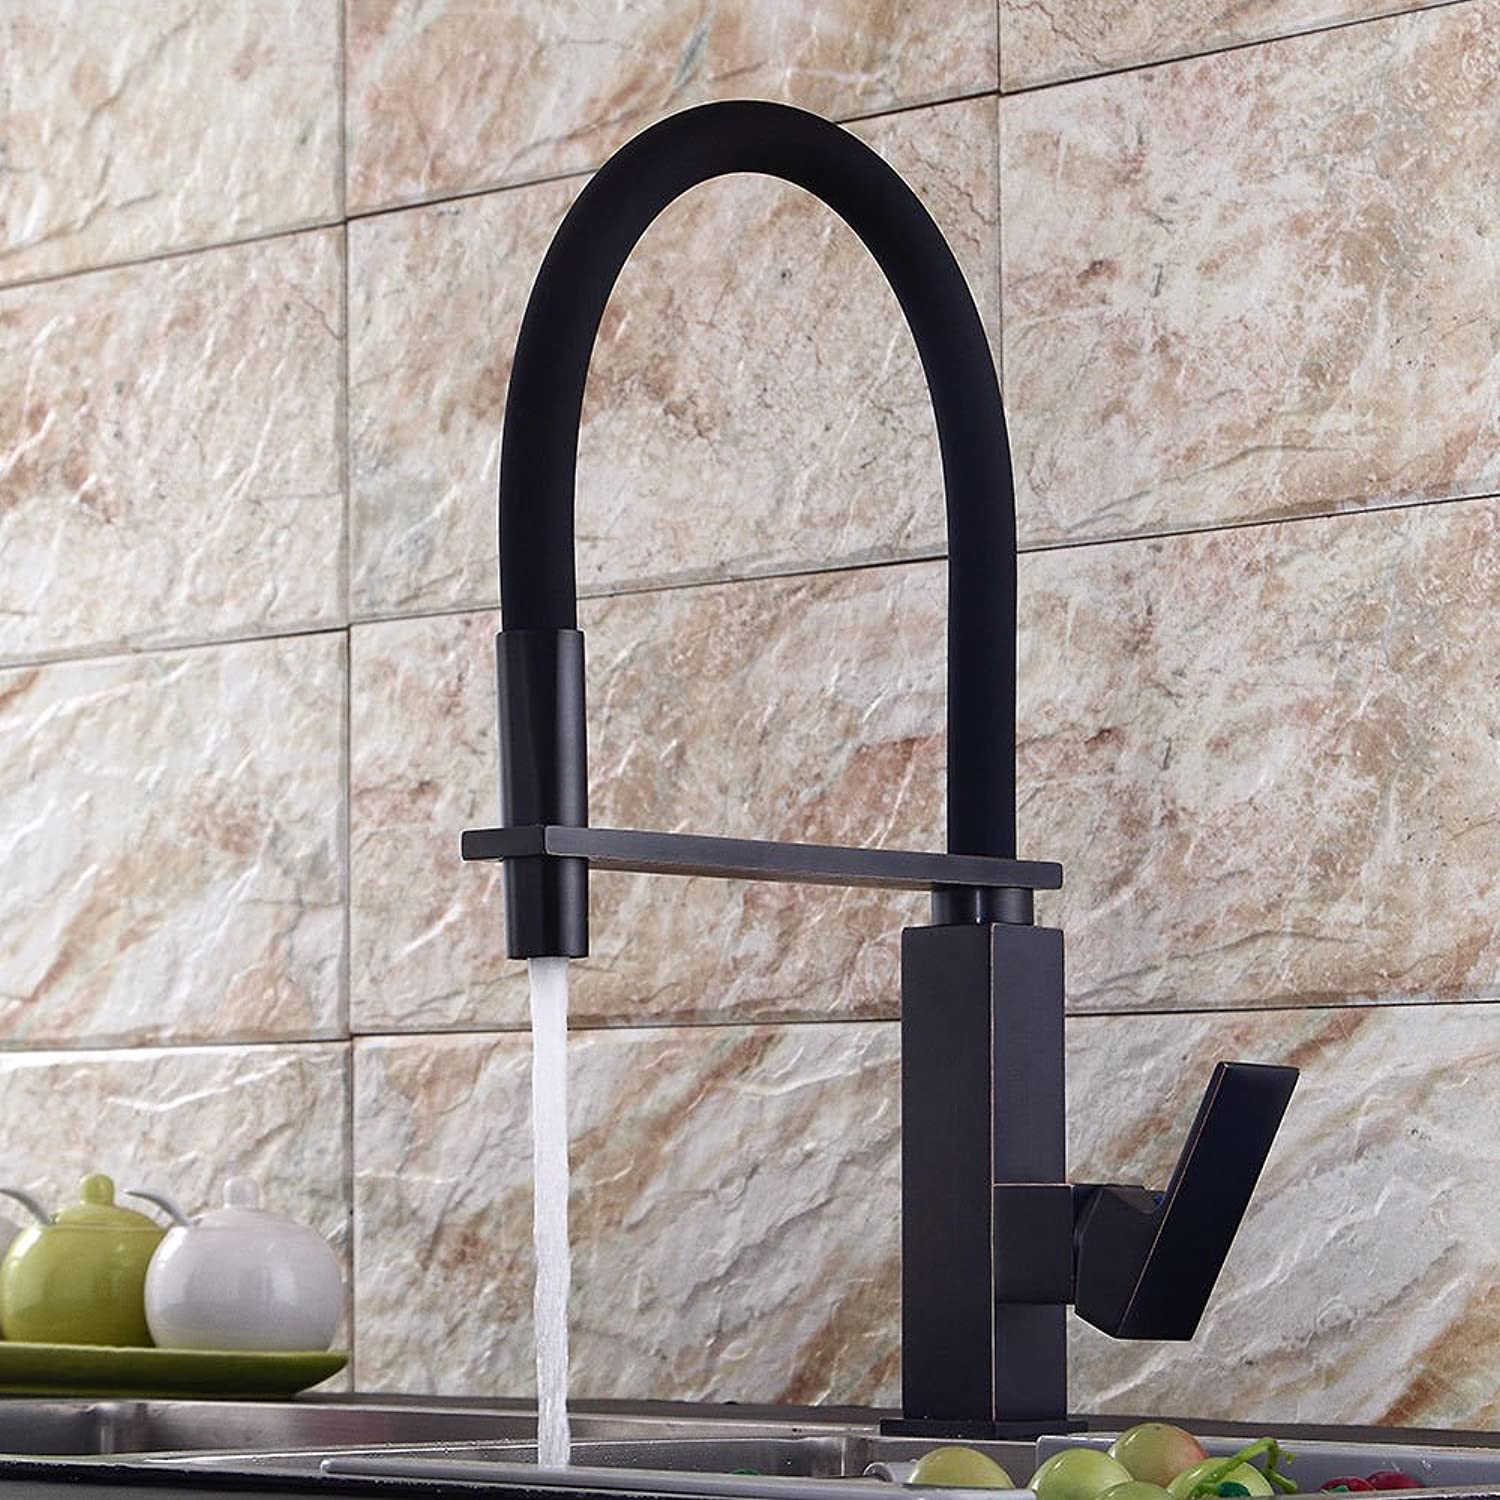 Lalaky Taps Faucet Kitchen Mixer Sink Waterfall Bathroom Mixer Basin Mixer Tap for Kitchen Bathroom and Washroom Black Black Ancient Cold Hot Water Mixing Valve redating Spring